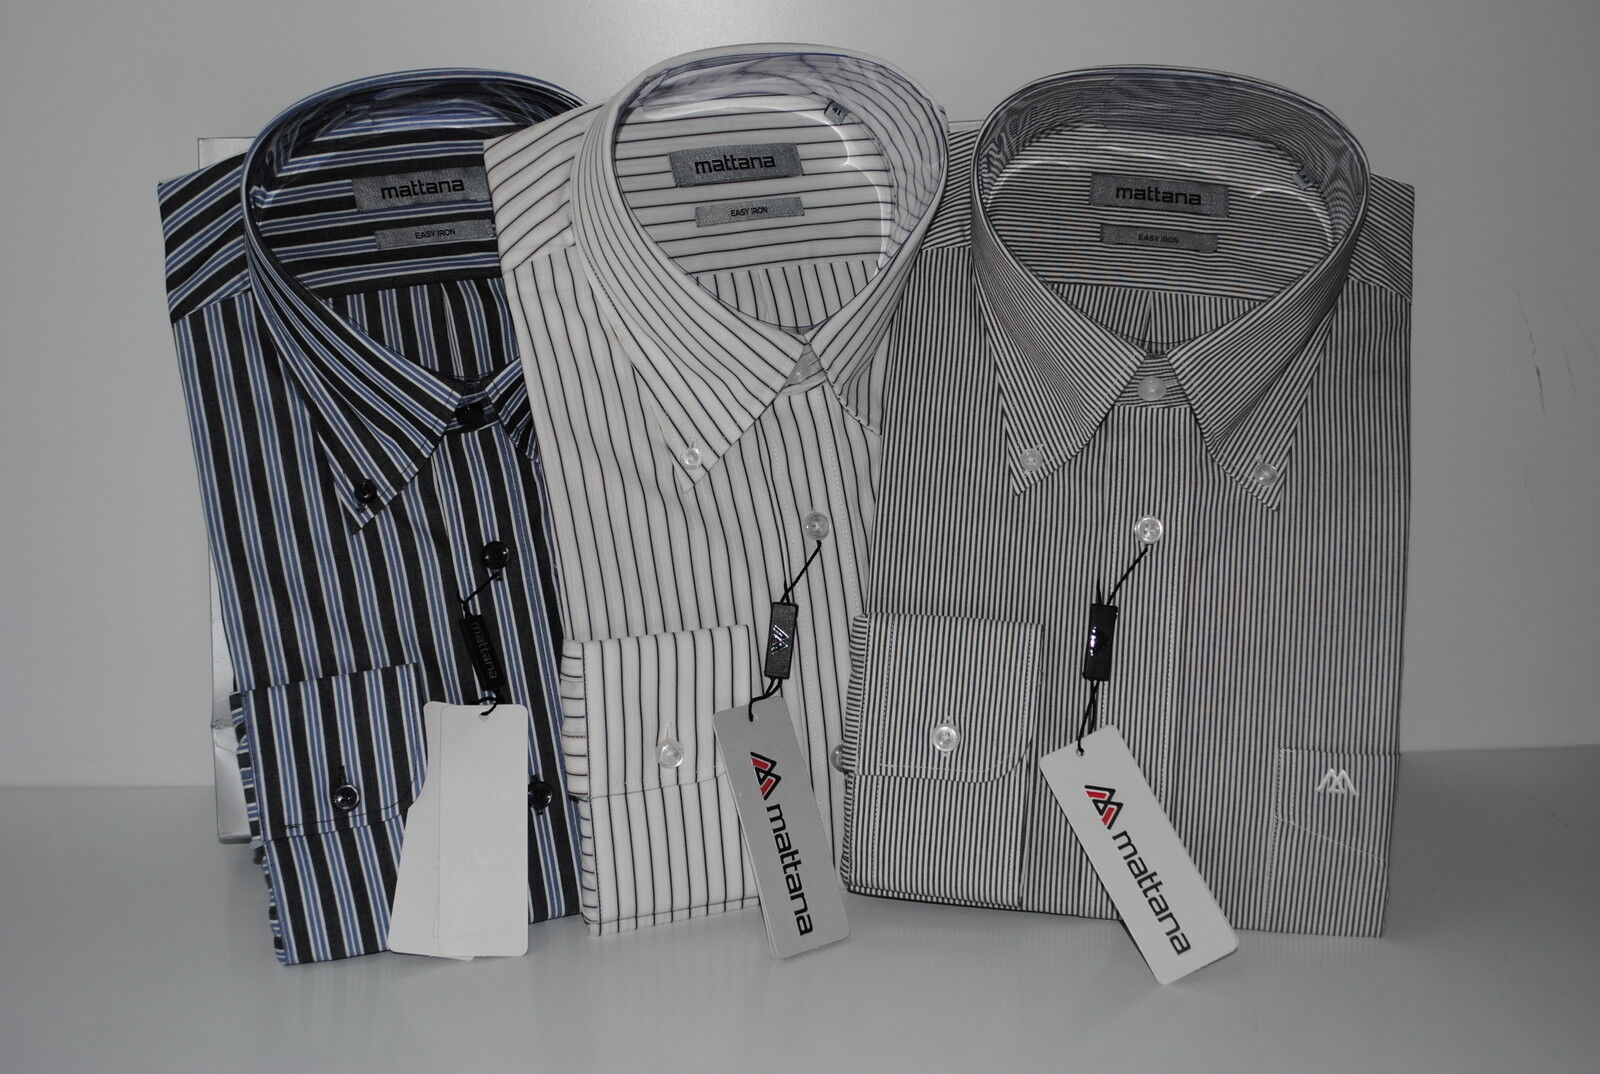 TRE CAMICIE UOMO CLASSICHE MANICA LUNGA COLLO BUTTON DOWN 40 STIRO FACILE COTONE